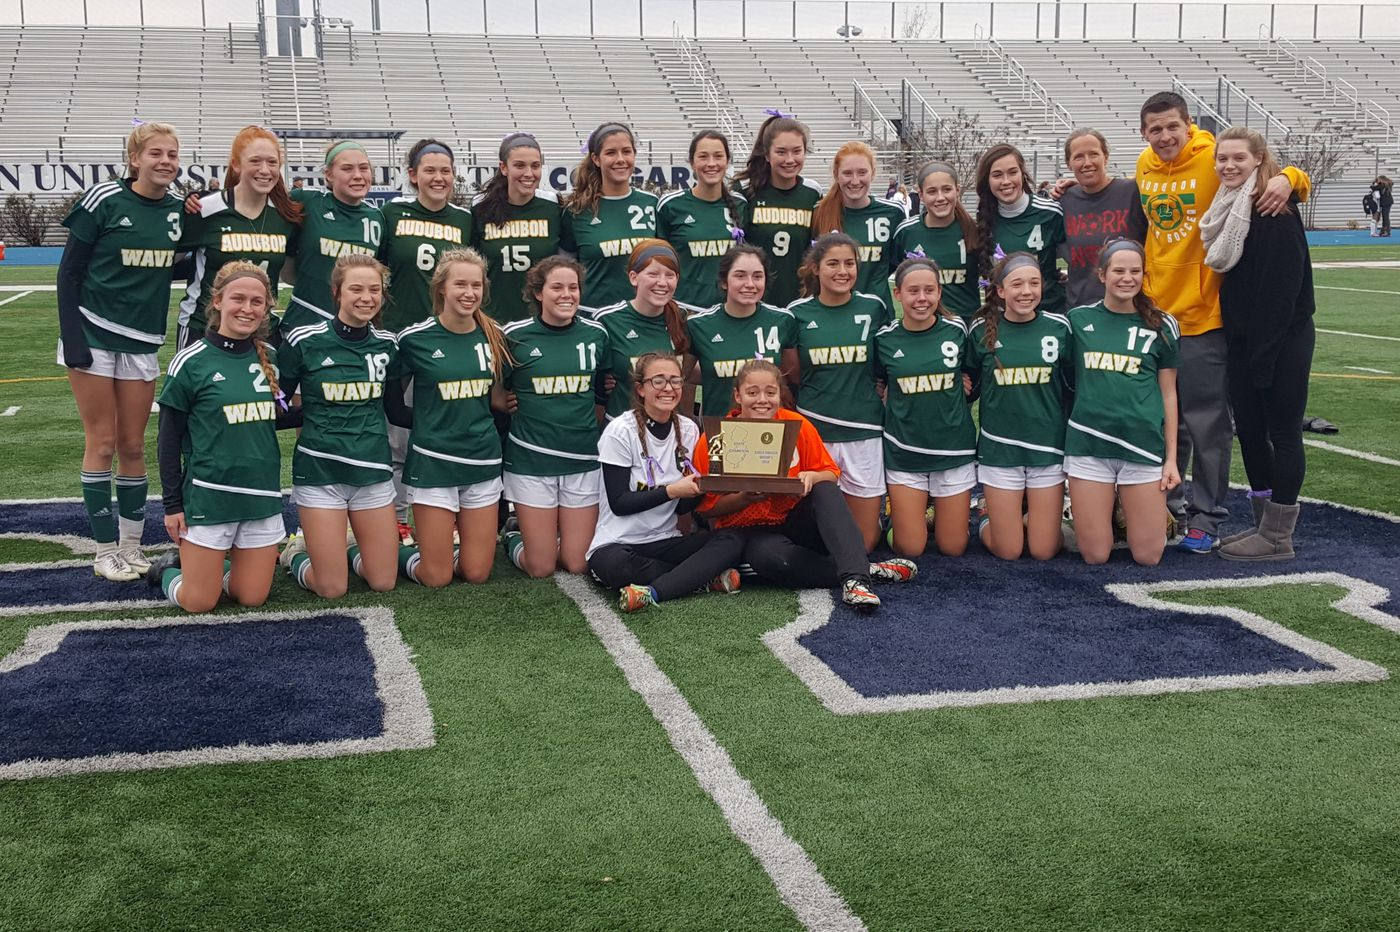 Audubon girls win first state soccer title with tough play in goal